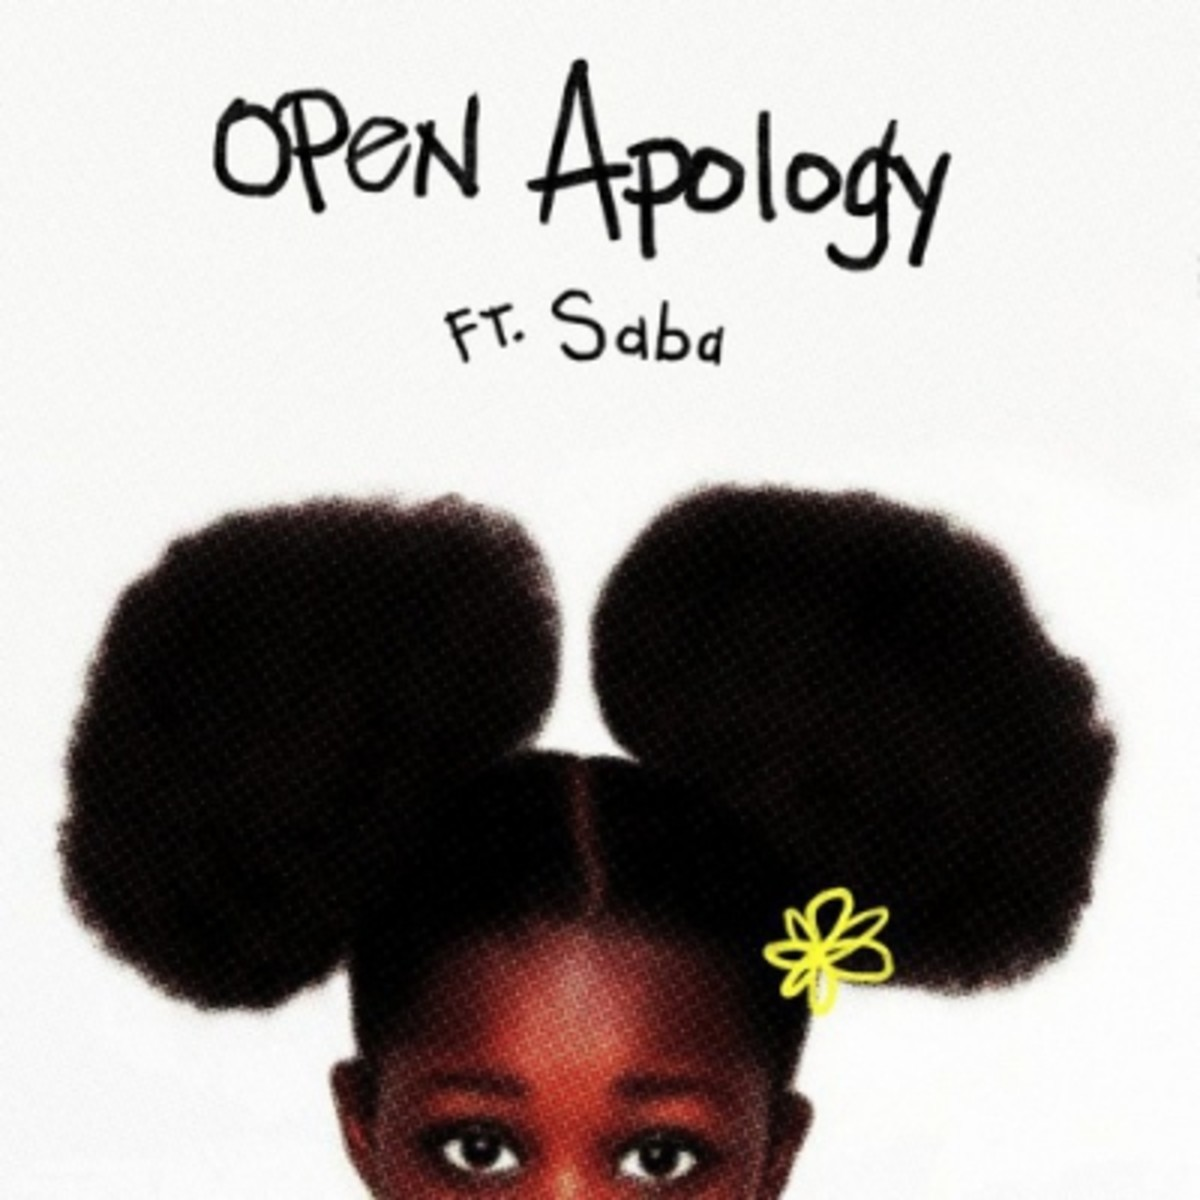 noname-gypsy-open-apology.jpg